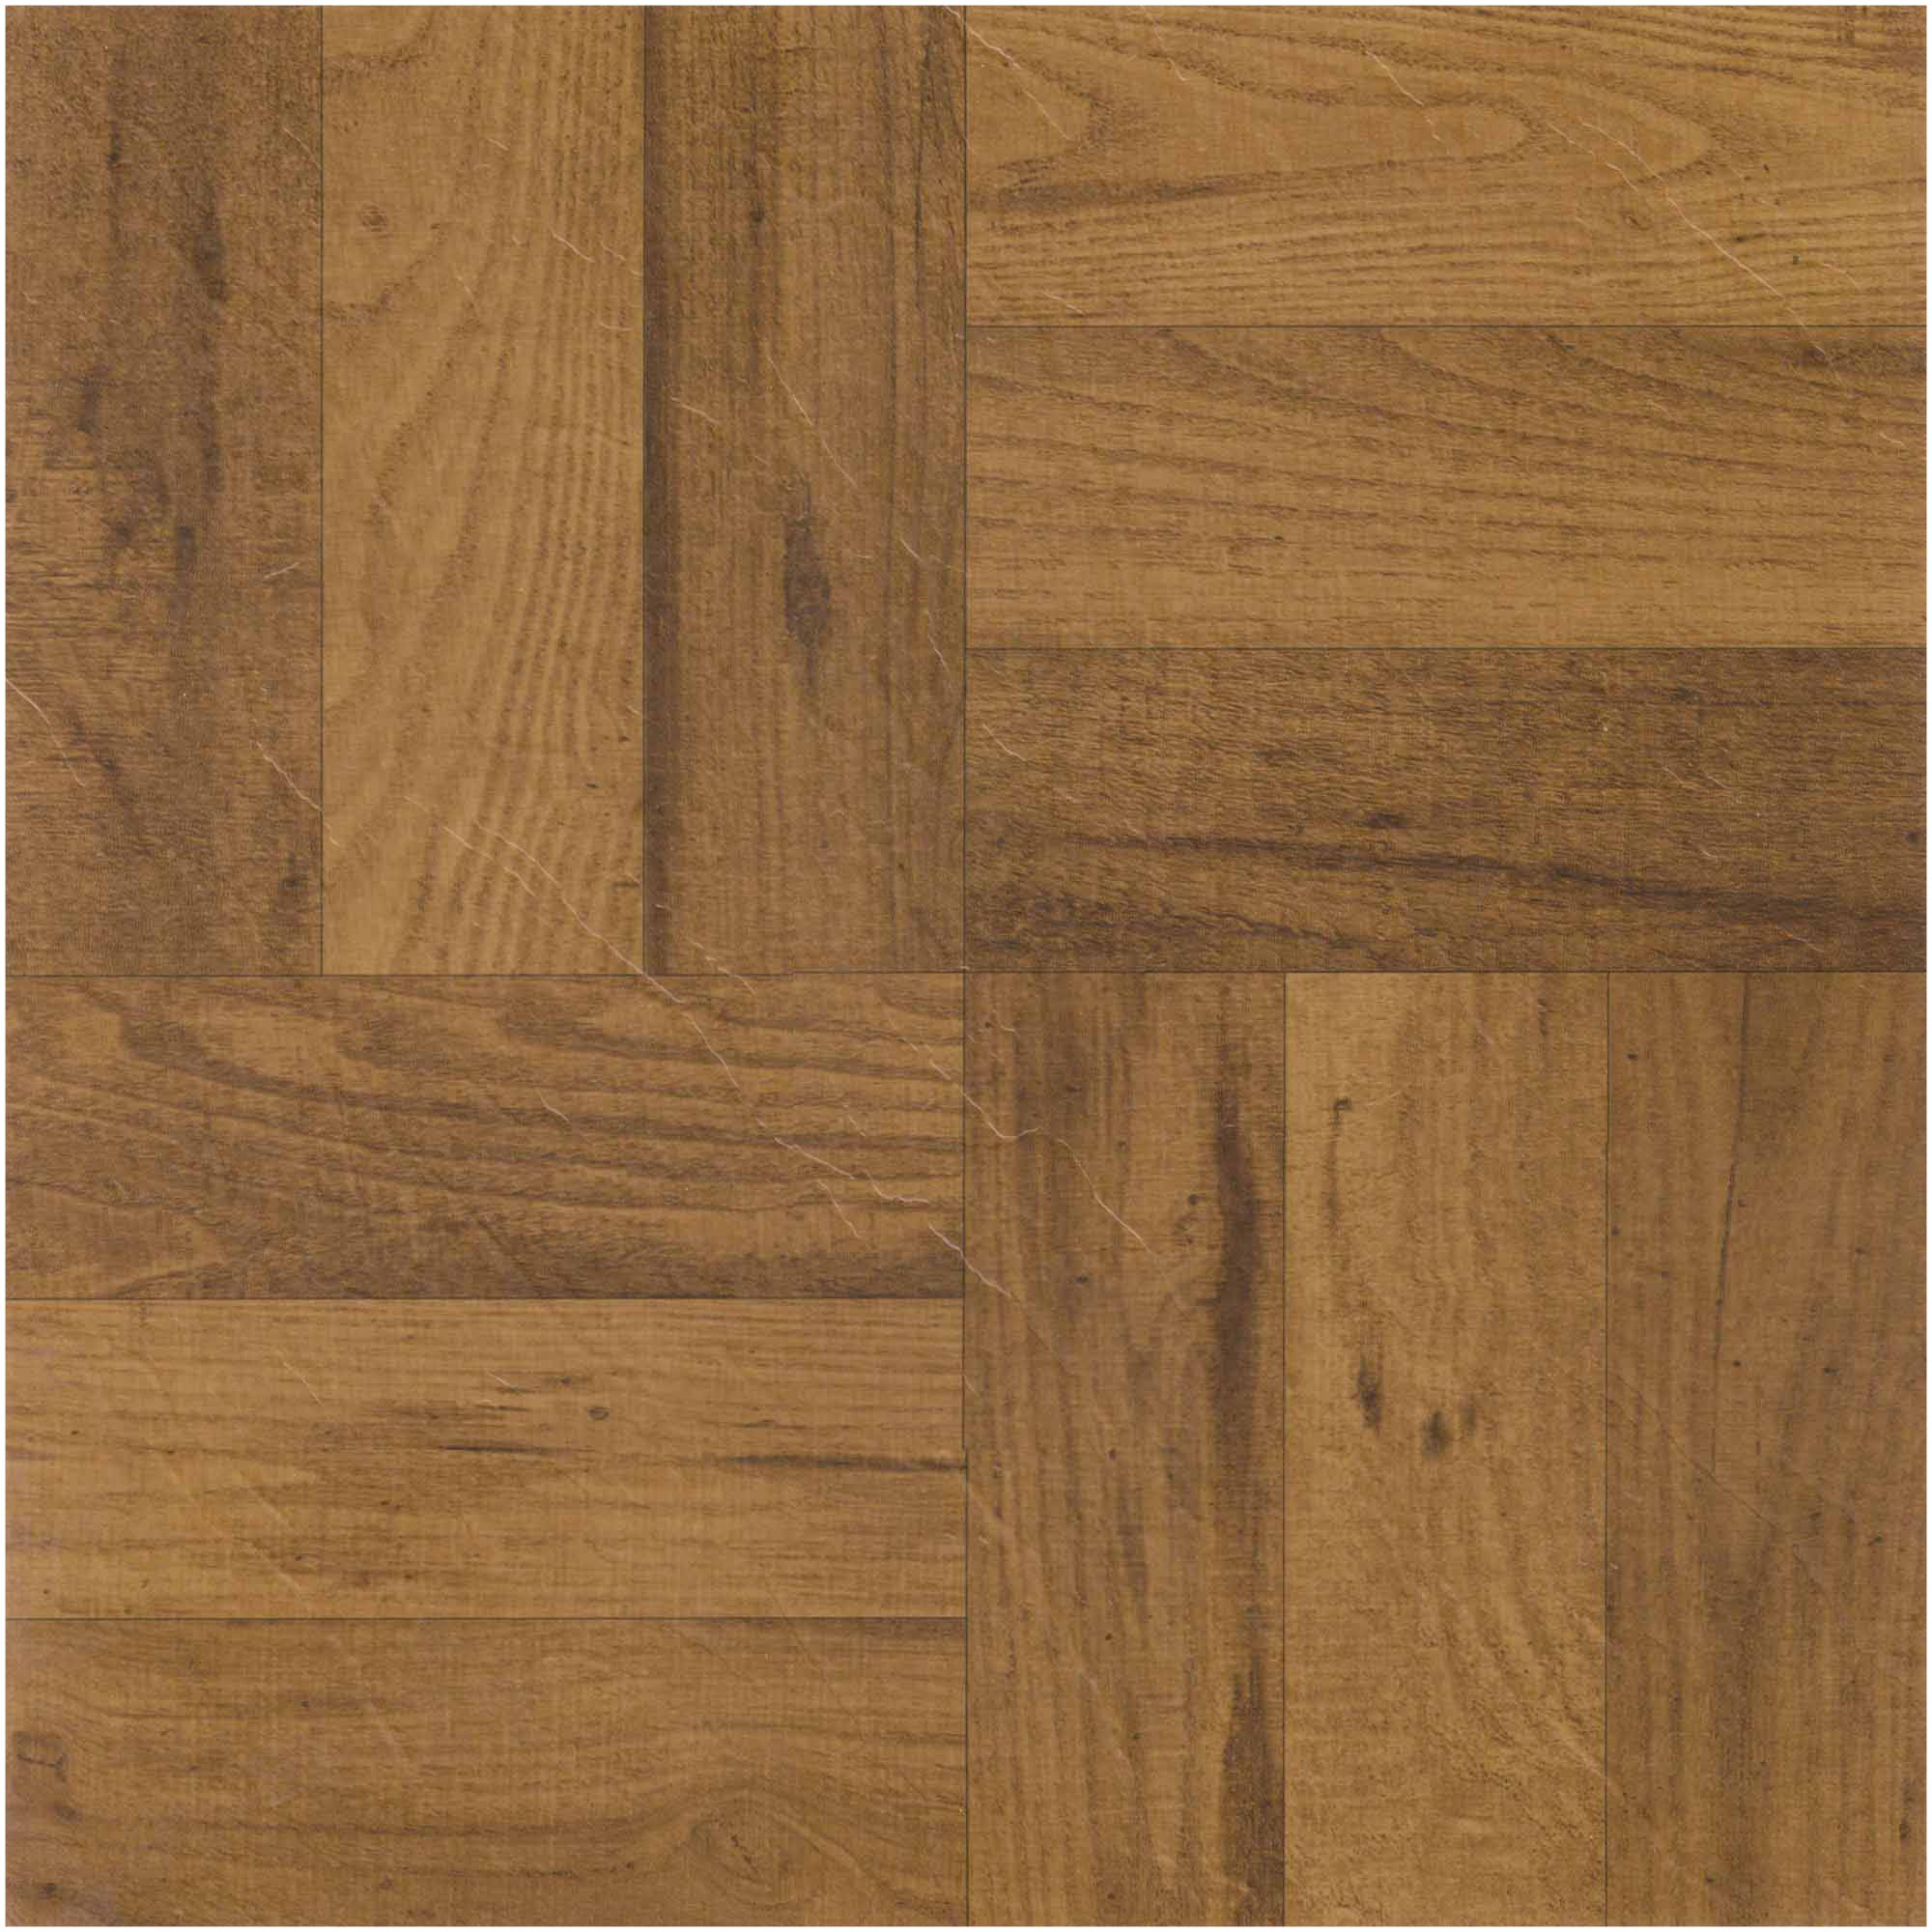 NEXUS 3 Finger Med. Oak Parquet 12x12 Self Adhesive Vinyl Floor Tile - 20 Tiles/20 Sq.Ft.